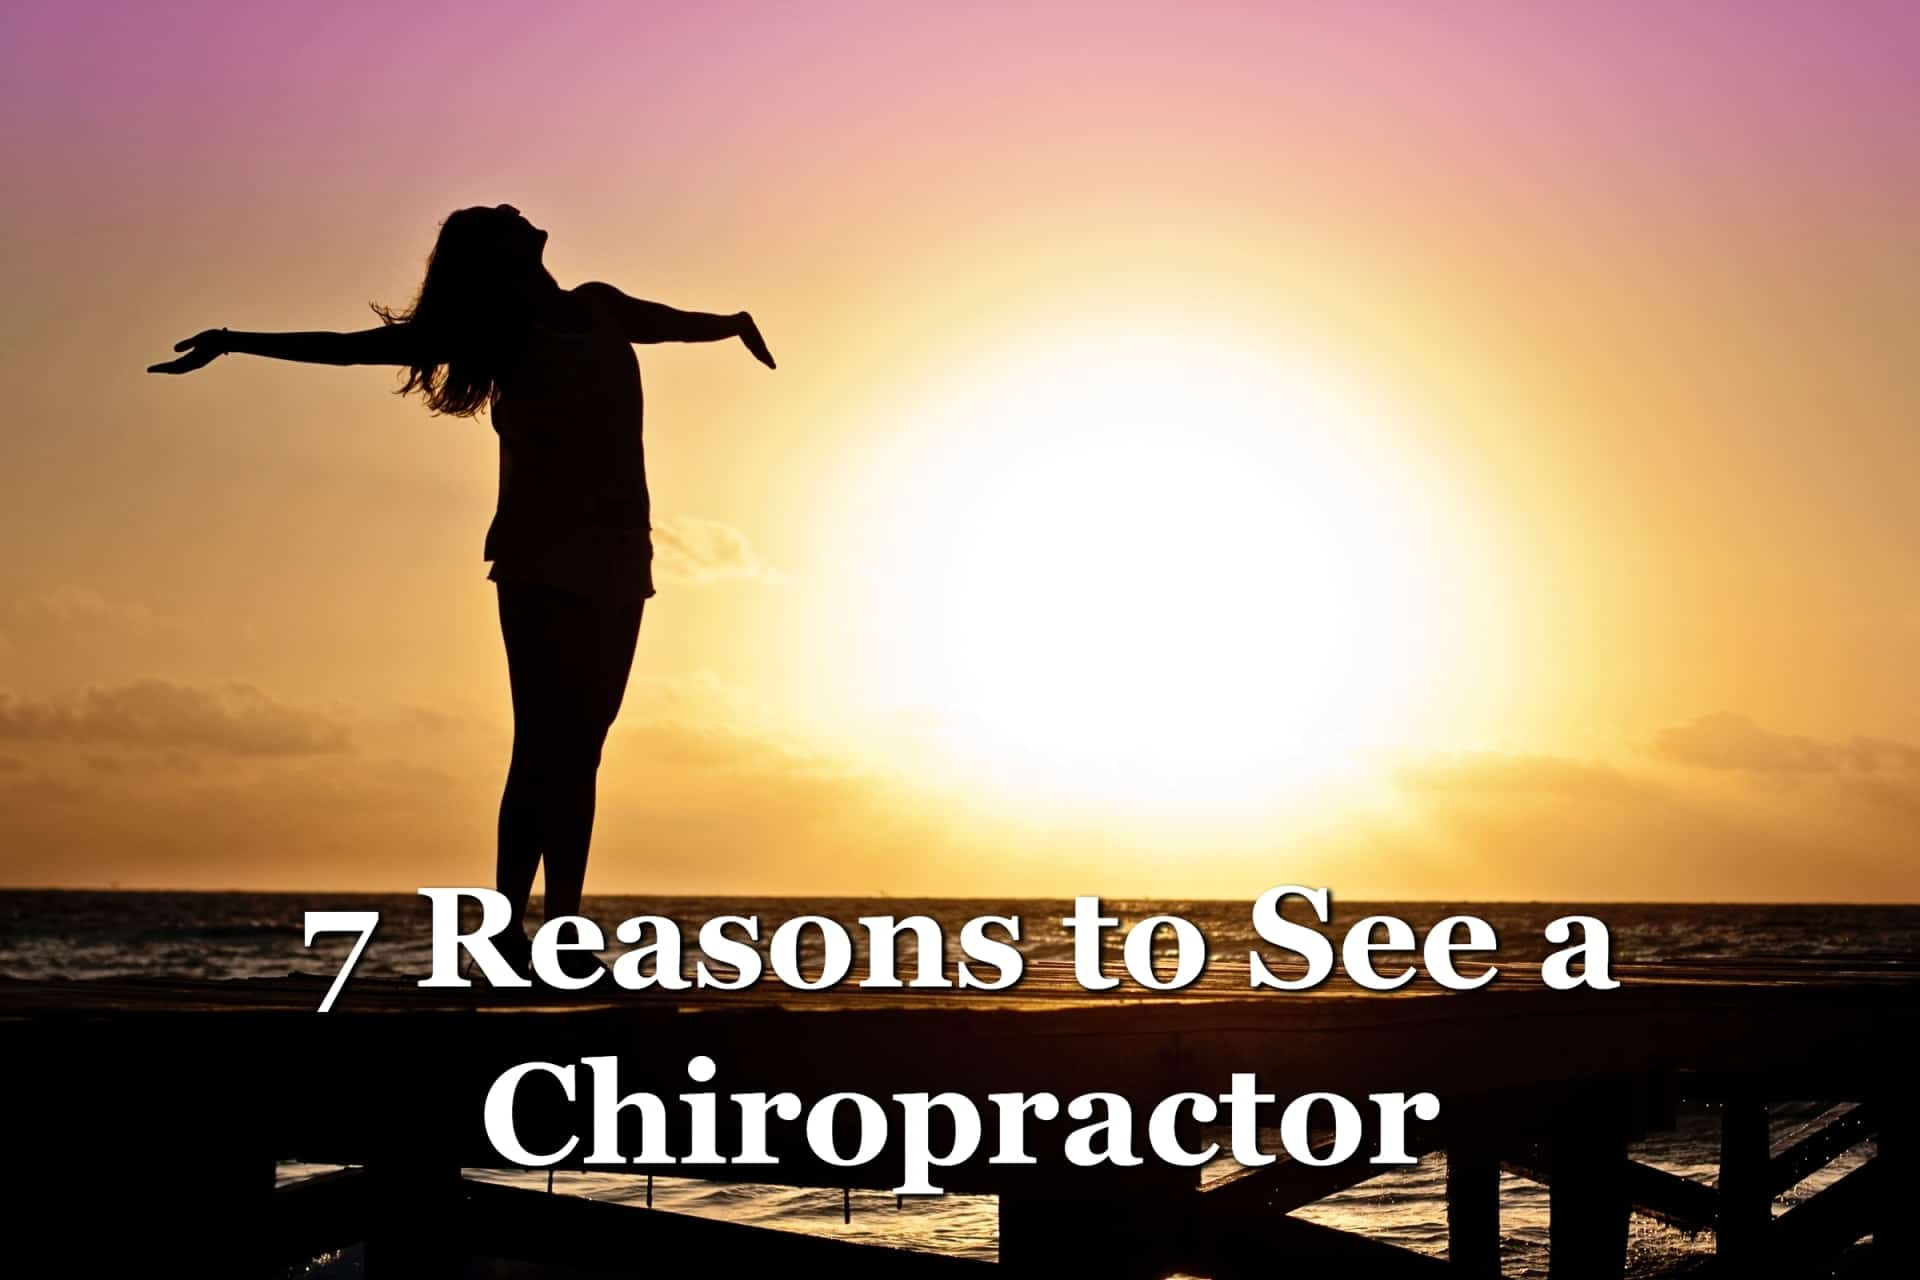 A woman at sunset happy with her reasons to see a chiropractor and eliminate her pain.